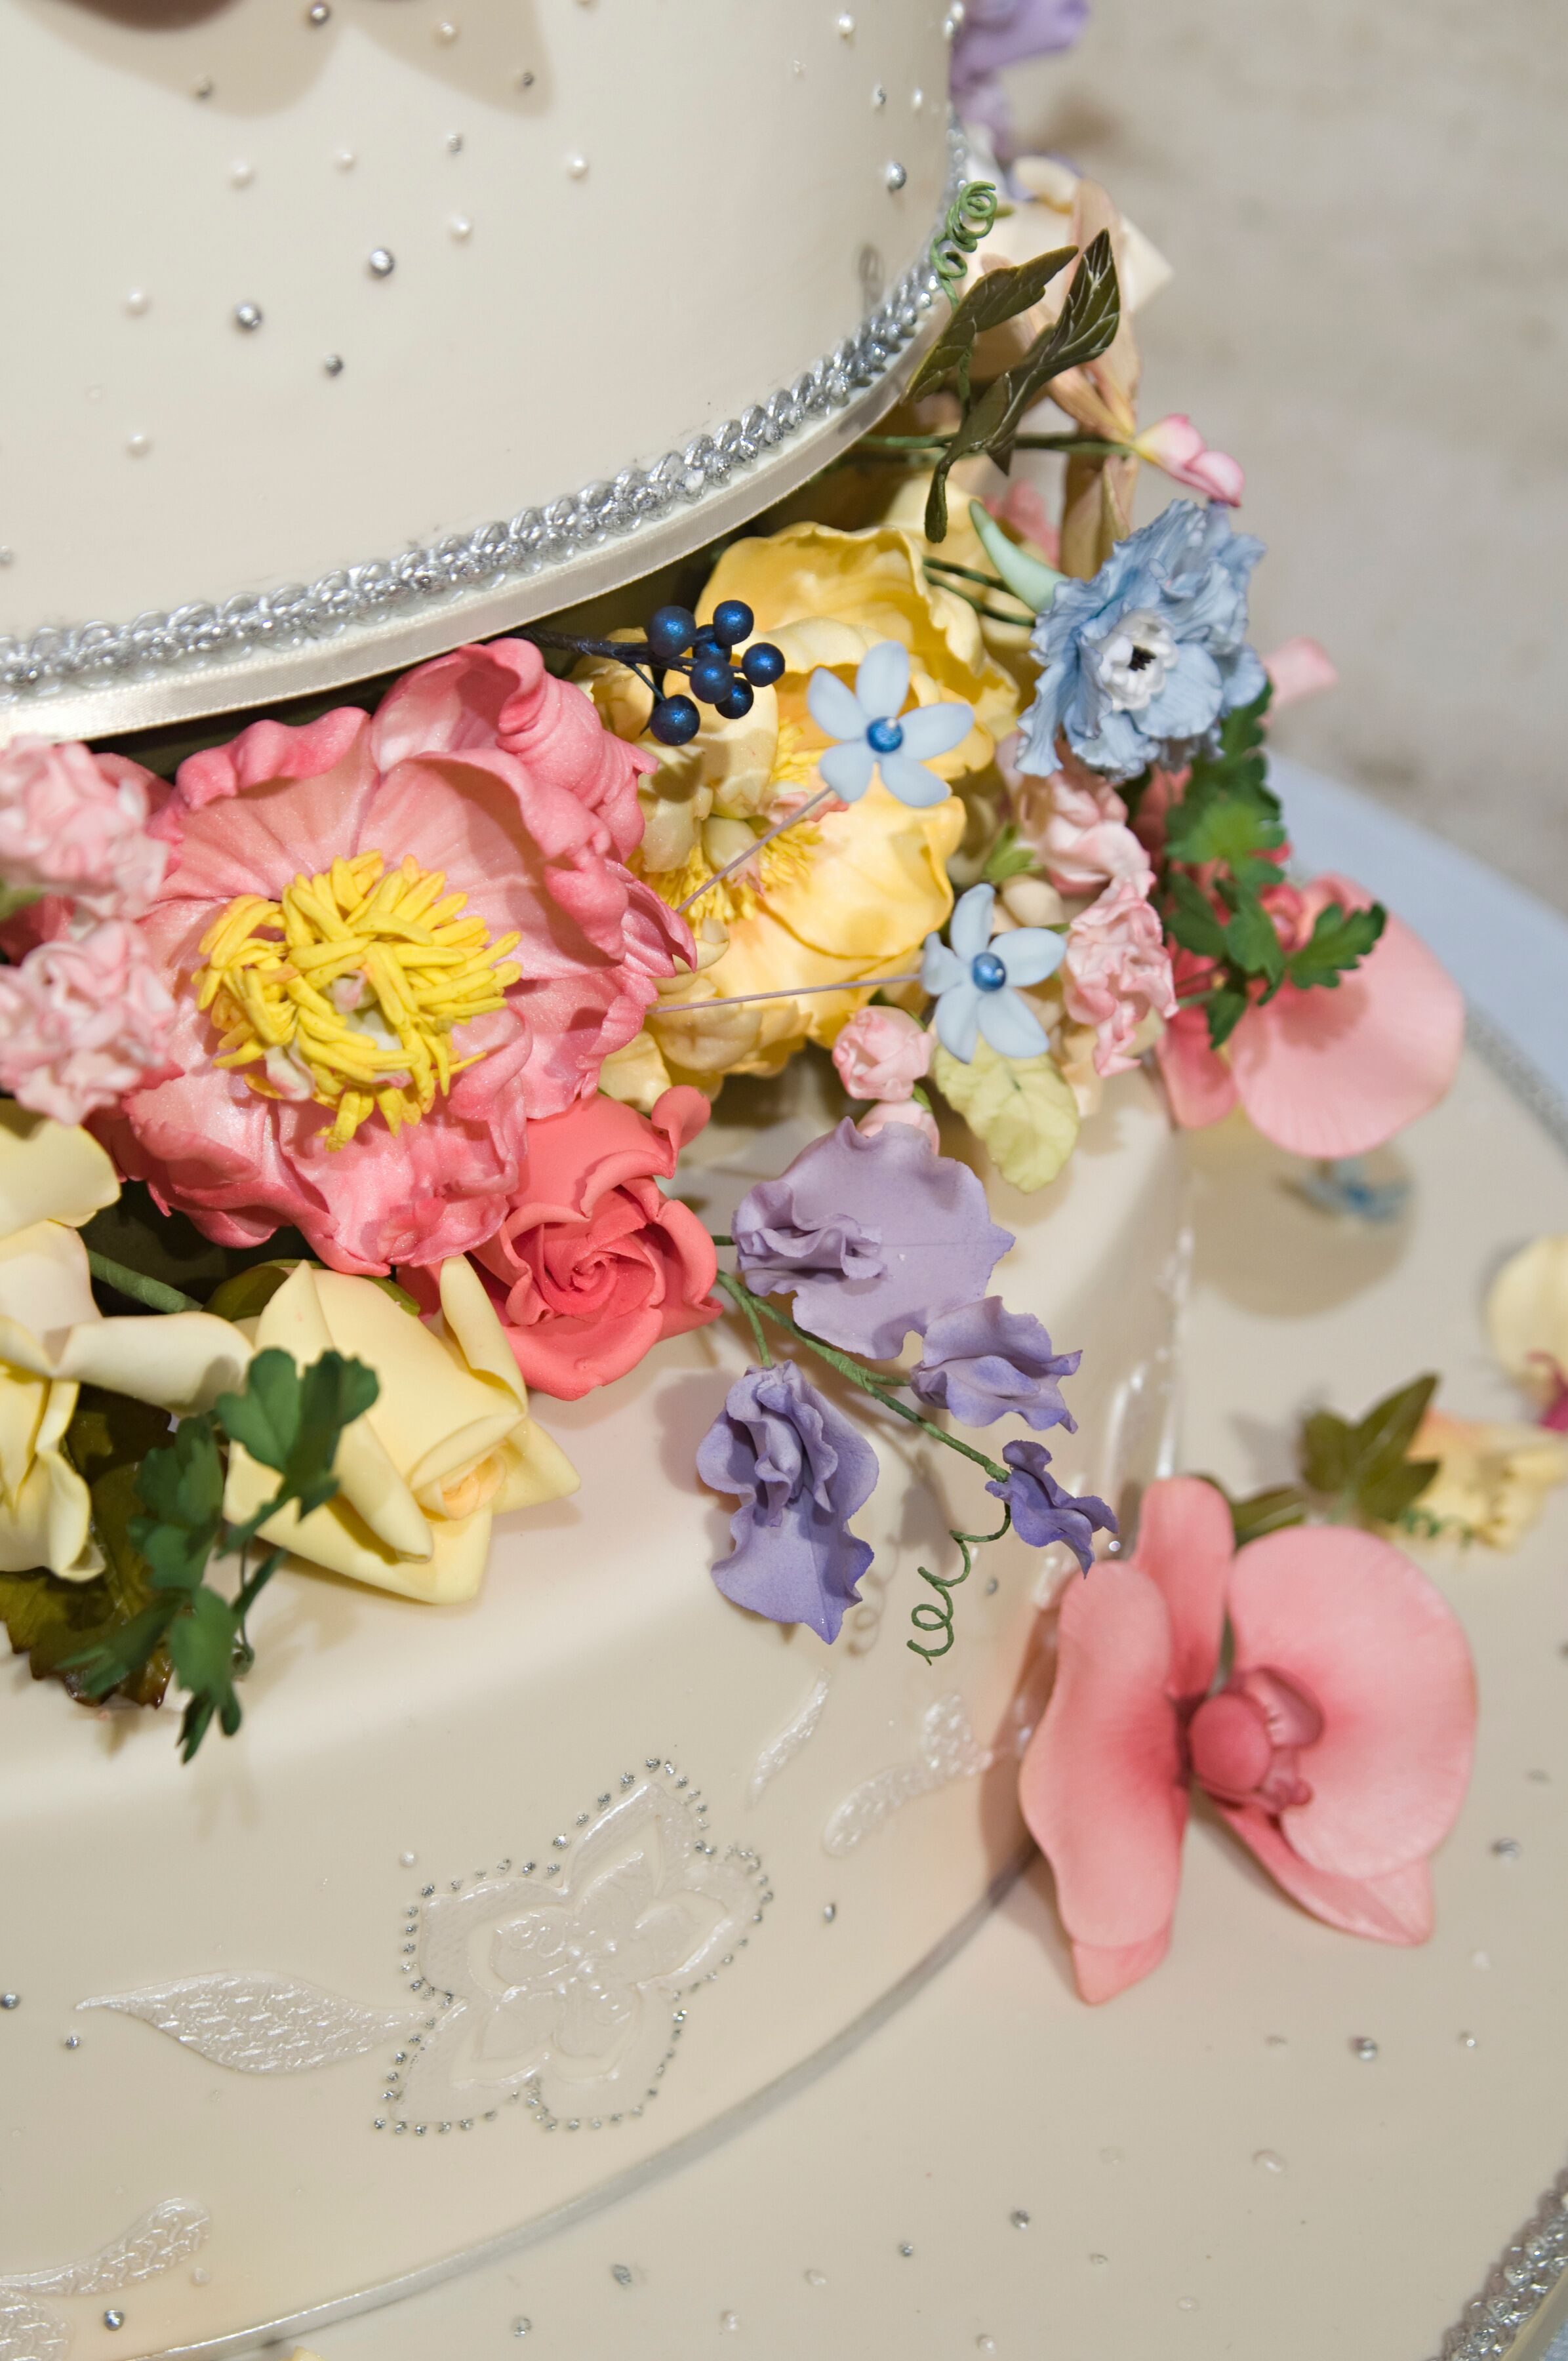 The wedding cake with floral designs